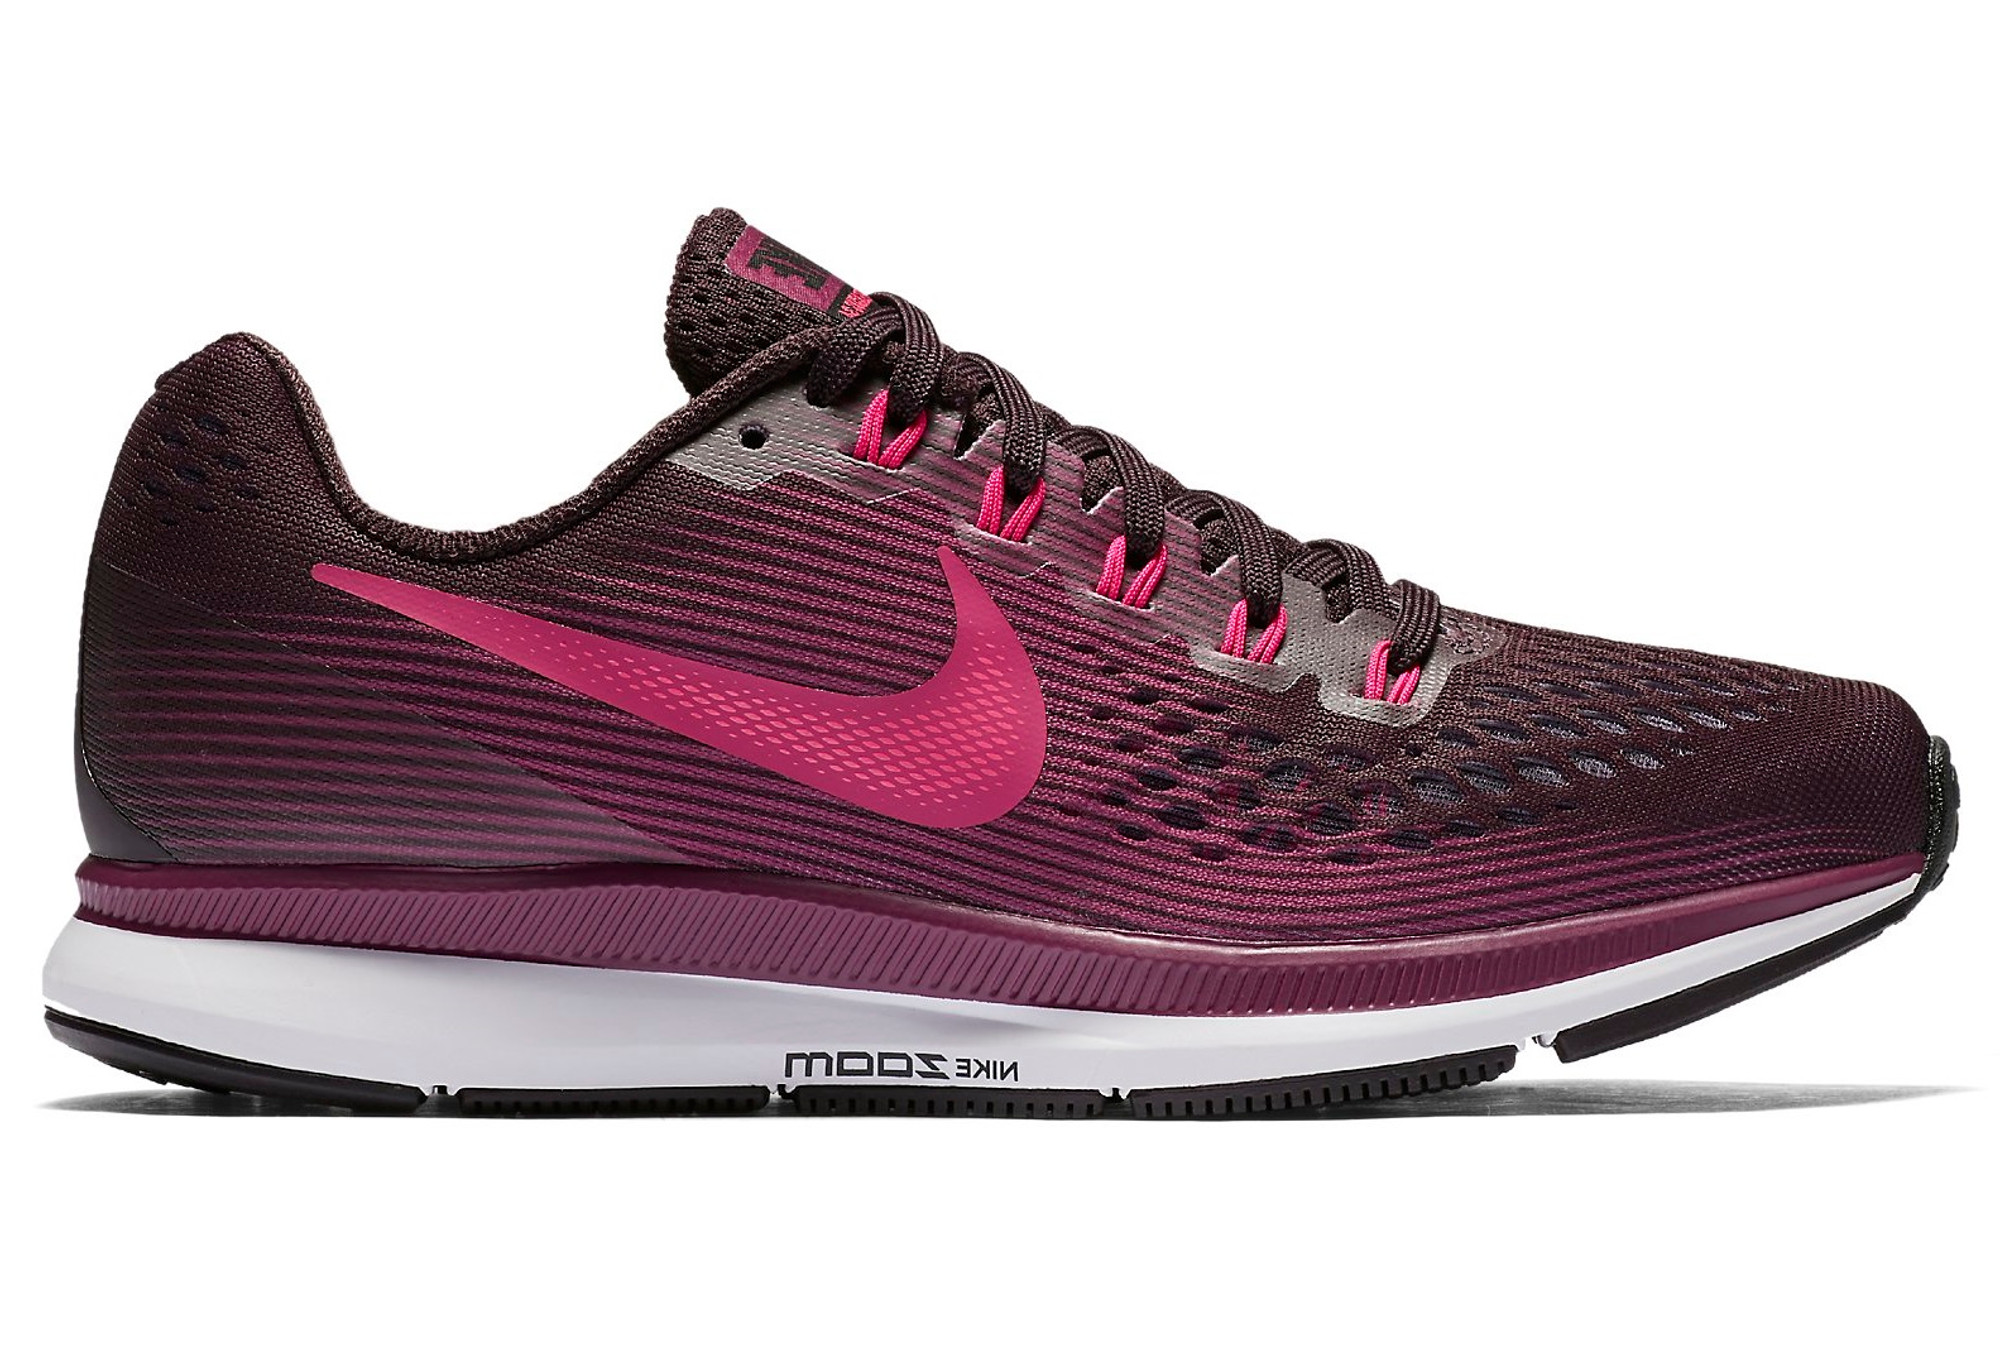 official photos 7721d 676c1 sweden chaussures de running femme nike air zoom pegasus 34 noir rose 28a4f  d4ec2